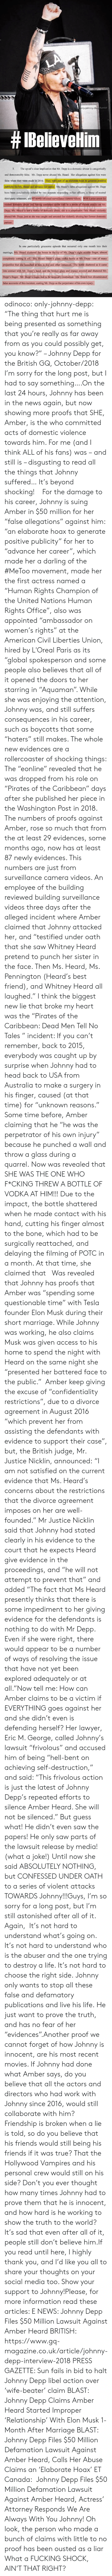 "Amber Rose, Best Friend, and Bones: tumblr  nly-johnny-dep  # Believe!im   3. The op-ed's clear implication that Mr. Depp is a domestic abuser is categorically  and demonstrably false. Mr. Depp never abused Ms. Heard. Her allegations against him were  false when they were made in 2016. They were part of an elaborate hoax to generate positive  publicity for Ms. Heard and advance her career. Ms. Heard's false allegations against Mr. Depp  have benconclusivlrfed by two pndng polie offices, a litany of neutral  third-party witnesses, and 87 newly obtained surveillance camera videos. With a prior arrest for  violent domestic abuse and having confessed under oath to a series of violent attacks on Mr.  Depp, Ms. Heard is not a victim of domestic abuse; she is a perpetrator. Ms. Heard violently  abused Mr. Depp, just as she was caught and arrested for violently abusing her former domestic  artner.   In one particularly gruesome episode that occurred only one month into their  marriage, Ms. Heard shattered the bones in the tip of Mr. Depp's right middle finger, almost  completely cutting it off. Ms. Heard threw a glass vodka bottle at Mr. Depp-one of many  projectiles that she launched at him in this and other instances. The bottle shattered as it came  into contact with Mr. Depp's hand, and the broken glass and impact severed and shattered Mr.  Depp's finger. Mr. Depp's finger had to be surgically reattached. Ms. Heard then disseminated  false accounts of this incident, casting Mr. Depp as the perpetrator of his own injury odinoco:  only-johnny-depp:  ""The thing that hurt me is being presented as something that you're really as far away from as you could possibly get, you know?"" – Johnny Depp for the British GQ, October/2018 I'm sorry for the long post, but I had to say something….On the last 24 hours, Johnny has been in the news again, but now showing more proofs that SHE, Amber, is the who committed acts of domestic violence towards him. For me (and I think ALL of his fans) was – and still is – disgusting to read all the things that Johnny suffered… It's beyond shocking!    For the damage to his career, Johnny is suing Amber in $50 million for her ""false allegations"" against him: ""an elaborate hoax to generate positive publicity"" for her to ""advance her career"", which made her a darling of the #MeToo movement, made her the first actress named a ""Human Rights Champion of the United Nations Human Rights Office"", also was appointed ""ambassador on women's rights"" at the American Civil Liberties Union, hired by L'Oreal Paris as its ""global spokesperson and some people also believes that all of it opened the doors to her starring in ""Aquaman"". While she was enjoying the attention, Johnny was, and still suffers consequences in his career, such as boycotts that some ""haters"" still makes. The whole new evidences are a rollercoaster of shocking things:     The ""eonline"" revealed that he was dropped from his role on ""Pirates of the Caribbean"" days after she published her piece in the Washington Post in 2018.    The numbers of proofs against Amber, rose so much that from the at least 29 evidences, some months ago, now has at least 87 newly evidences. This numbers are just from surveillance camera videos.    An employee of the building reviewed building surveillance videos three days after the alleged incident where Amber claimed that Johnny attacked her, and ""testified under oath that she saw Whitney Heard pretend to punch her sister in the face. Then Ms. Heard, Ms. Pennington (Heard's best friend), and Whitney Heard all laughed.""   I think the biggest new lie that broke my heart was the ""Pirates of the Caribbean: Dead Men Tell No Tales  "" incident: If you can't remember, back to 2015, everybody was caught up by surprise when Johnny had to head back to USA from Australia to make a surgery in his finger, caused (at that time) for ""unknown reasons."" Some time before, Amber   claiming that he   ""he was the perpetrator of his own injury"" because he punched a wall and throw a glass during a quarrel. Now was revealed that SHE WAS THE ONE WHO F*CKING THREW A BOTTLE OF VODKA AT HIM!!! Due to the impact, the bottle shattered when he made contact with his hand, cutting his finger almost to the bone, which had to be surgically reattached, and delaying the filming of POTC in a month. At that time, she claimed that        Was revealed that Johnny has proofs that Amber was ""spending some questionable time"" with Tesla founder Elon Musk during their short marriage. While Johnny was working, he also claims Musk was given access to his home to spend the night with Heard on the same night she ""presented her battered face to the public.""   Amber keep giving the excuse of ""confidentiality restrictions"", due to a divorce agreement in August 2016 ""which prevent her from assisting the defendants with evidence to support their case"", but, the British judge, Mr. Justice Nicklin, announced: ""I am not satisfied on the current evidence that Ms. Heard's concerns about the restrictions that the divorce agreement imposes on her are well-founded."" Mr Justice Nicklin said that Johnny had stated clearly in his evidence to the court that he expects Heard give evidence in the proceedings, and ""he will not attempt to prevent that"" and added ""The fact that Ms Heard presently thinks that there is some impediment to her giving evidence for the defendants is nothing to do with Mr Depp. Even if she were right, there would appear to be a number of ways of resolving the issue that have not yet been explored adequately or at all.""Now tell me: How can Amber claims to be a victim if EVERYTHING goes against her and she didn't even is defending herself? Her lawyer, Eric M. George, called Johnny's lawsuit ""frivolous"" and accused him of being ""hell-bent on achieving self-destruction,"" and said: ""This frivolous action is just the latest of Johnny Depp's repeated efforts to silence Amber Heard. She will not be silenced."" But guess what! He didn't even saw the papers! He only saw parts of the lawsuit release by media! (what a joke!) Until now she said ABSOLUTELY NOTHING, but CONFESSED UNDER OATH to a series of violent attacks TOWARDS Johnny!!!Guys, I'm so sorry for a long post, but I'm still astonished after all of it. Again,   It's not hard to understand what's going on. It's not hard to understand who is the abuser and the one trying to destroy a life. It's not hard to choose the right side.   Johnny only wants to stop all these false and defamatory publications and live his life. He just want to prove the truth, and has no fear of her ""evidences"".Another proof we cannot forget of how Johnny is innocent, are his most recent movies. If Johnny had done what Amber says, do you believe that all the actors and directors who had work with Johnny since 2016, would still collaborate with him? Friendship is broken when a lie is told, so do you believe that his friends would still being his friends if it was true? That the Hollywood Vampires and his personal crew would still on his side? Don't you ever thought how many times Johnny had to prove them that he is innocent, and how hard is he working to show the truth to the world? It's sad that even after all of it, people still don't believe him.If you read until here, I highly thank you, and I'd like you all to share your thoughts on your social media too. Show your support to Johnny!Please, for more information read these articles: E NEWS:   Johnny Depp Files $50 Million Lawsuit Against Amber Heard       BRITISH: https://www.gq-magazine.co.uk/article/johnny-depp-interview-2018     PRESS GAZETTE:   Sun fails in bid to halt Johnny Depp libel action over 'wife-beater' claim        BLAST:   Johnny Depp Claims Amber Heard Started Improper 'Relationship' With Elon Musk 1-Month After Marriage        BLAST:   Johnny Depp Files $50 Million Defamation Lawsuit Against Amber Heard, Calls Her Abuse Claims an 'Elaborate Hoax'        ET Canada:   Johnny Depp Files $50 Million Defamation Lawsuit Against Amber Heard, Actress' Attorney Responds  We Are Always With You Johnny!   Oh look, the person who made a bunch of claims with little to no proof has been ousted as a liar What a FUCKING SHOCK, AIN'T THAT RIGHT?"